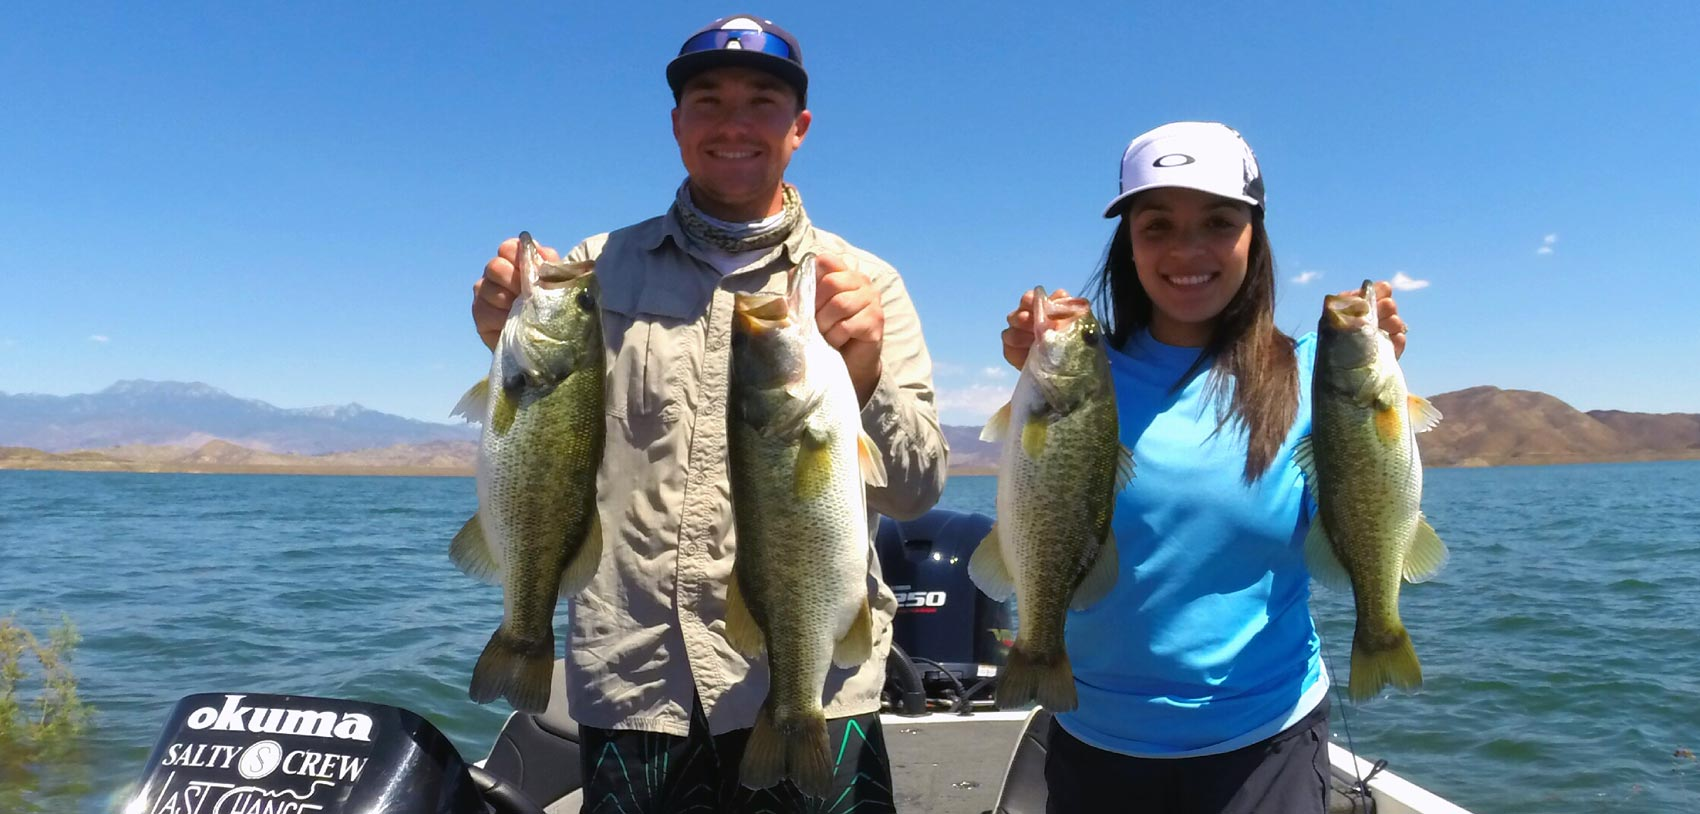 Diamond valley lake fish report 8 21 16 for Diamond valley lake fishing report